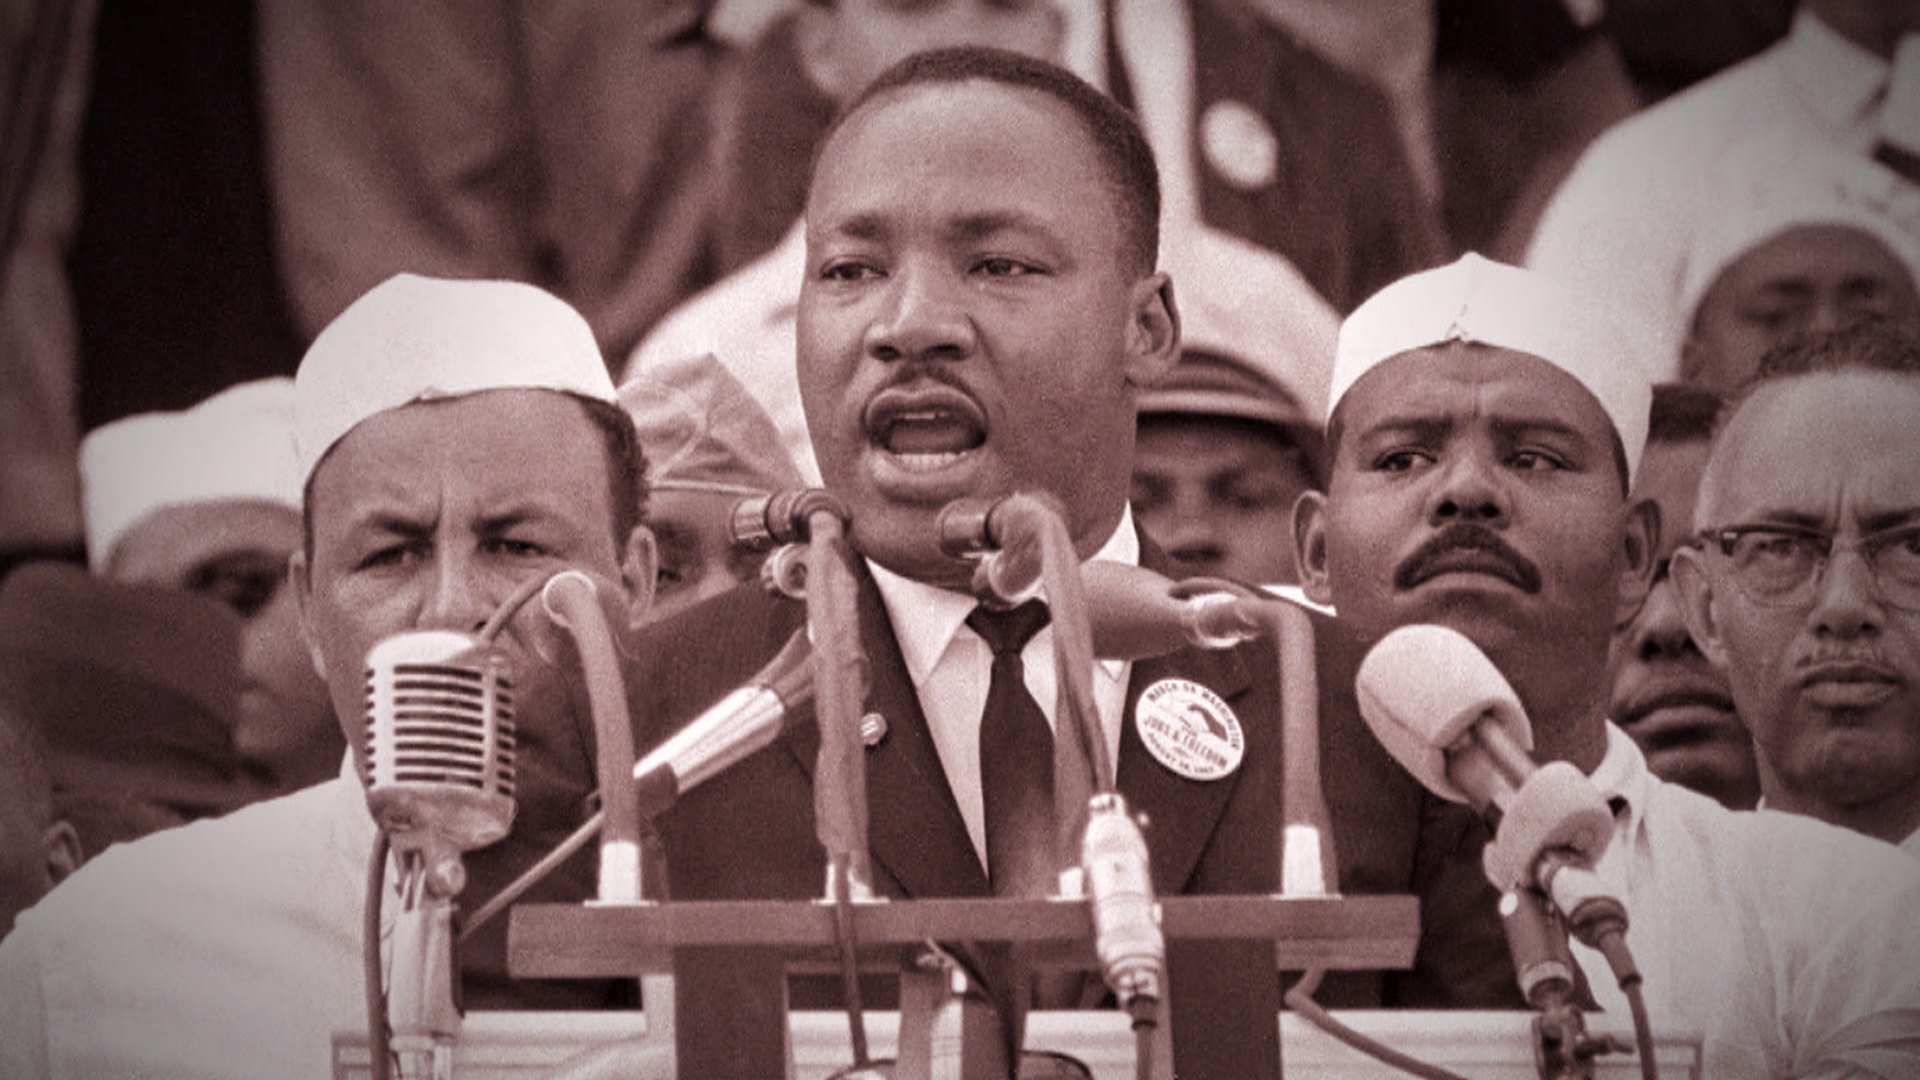 purpose of i have a dream speech The main purpose of luther's speech was to persuade the audience to work towards ending the racial discrimination additionally, it inspired and brought hope to the people that one day discrimination can be abolished.